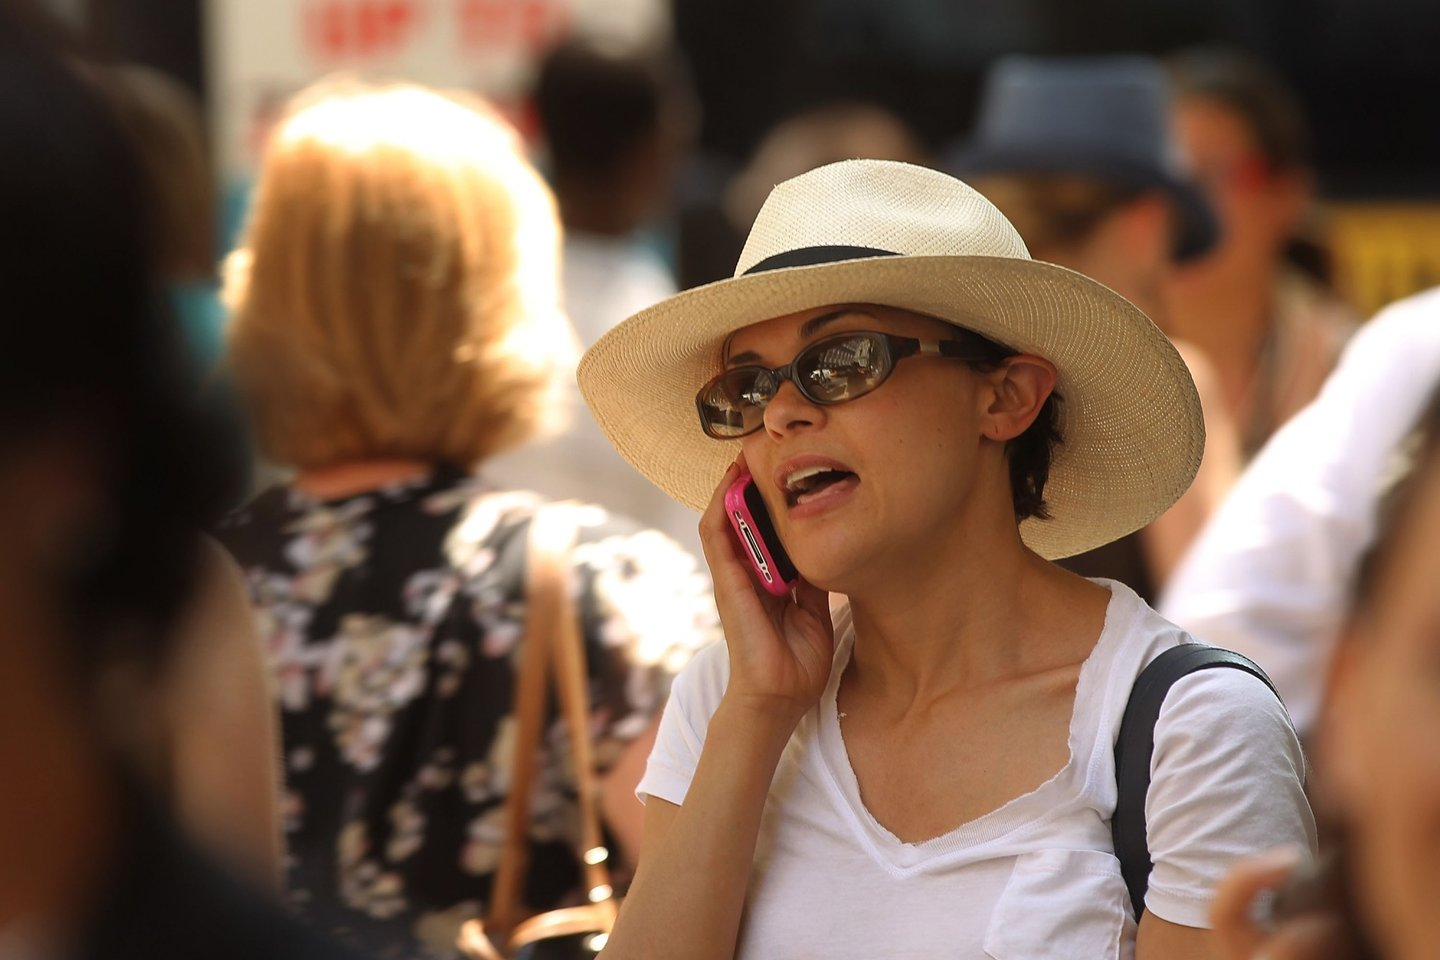 NEW YORK, NY - MAY 31:  A woman speaks on her mobile phone on May 31, 2011 in New York City.  In a new report by 31 scientists meeting at the World Health Organization's International Agency for Research on Cancer (WHO/IARC) it was found that using a mobile phone may increase your risk for certain kinds of brain cancers. While further scientific work will be conducted, the group of scientists from 14 countries classified cell phones in the carcinogenic category 2B, which is similar to the pesticide DDT and gasoline engine exhaust.  (Photo by Spencer Platt/Getty Images)